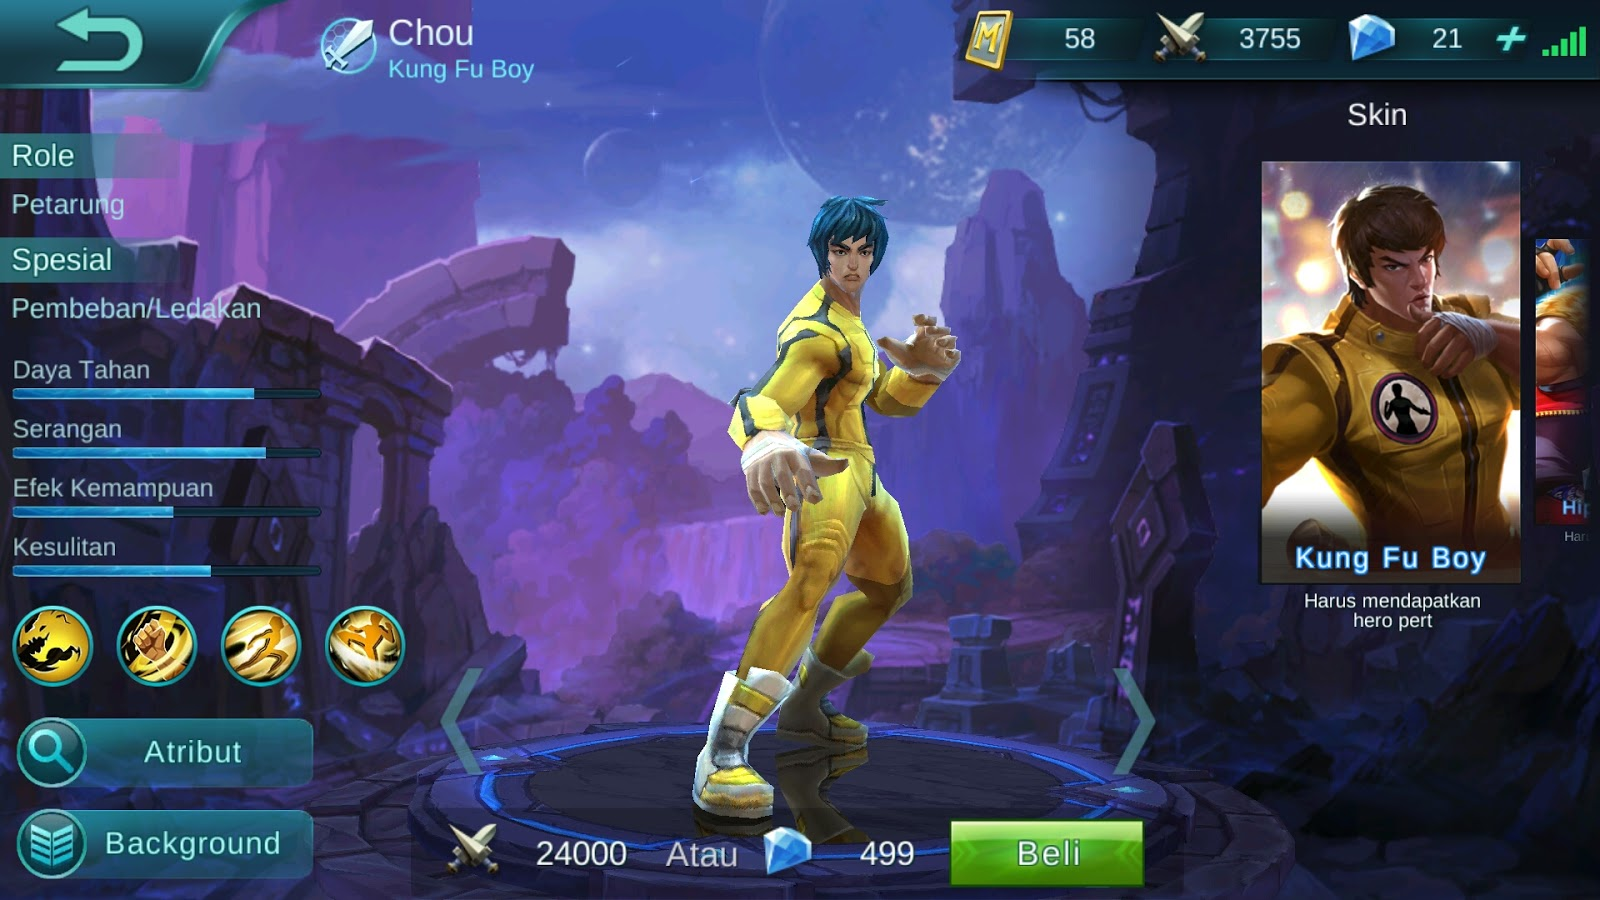 Best Chou Builds In Mobile Legends